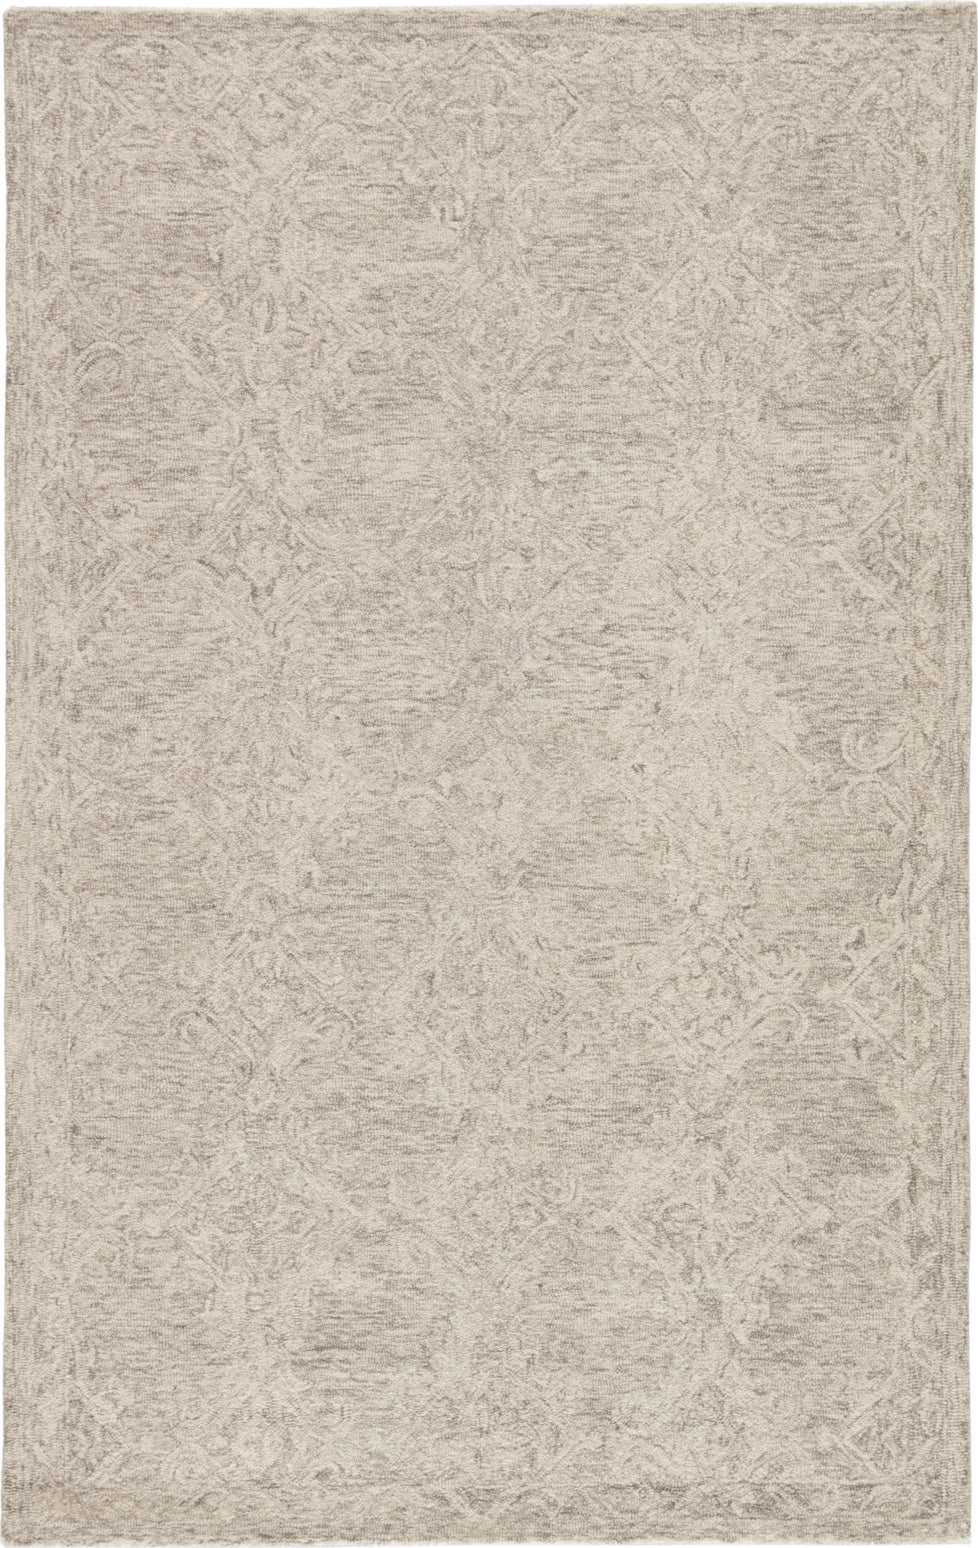 Jaipur Living Province Linde Pro01 Gray White Area Rug Incredible Rugs And Decor